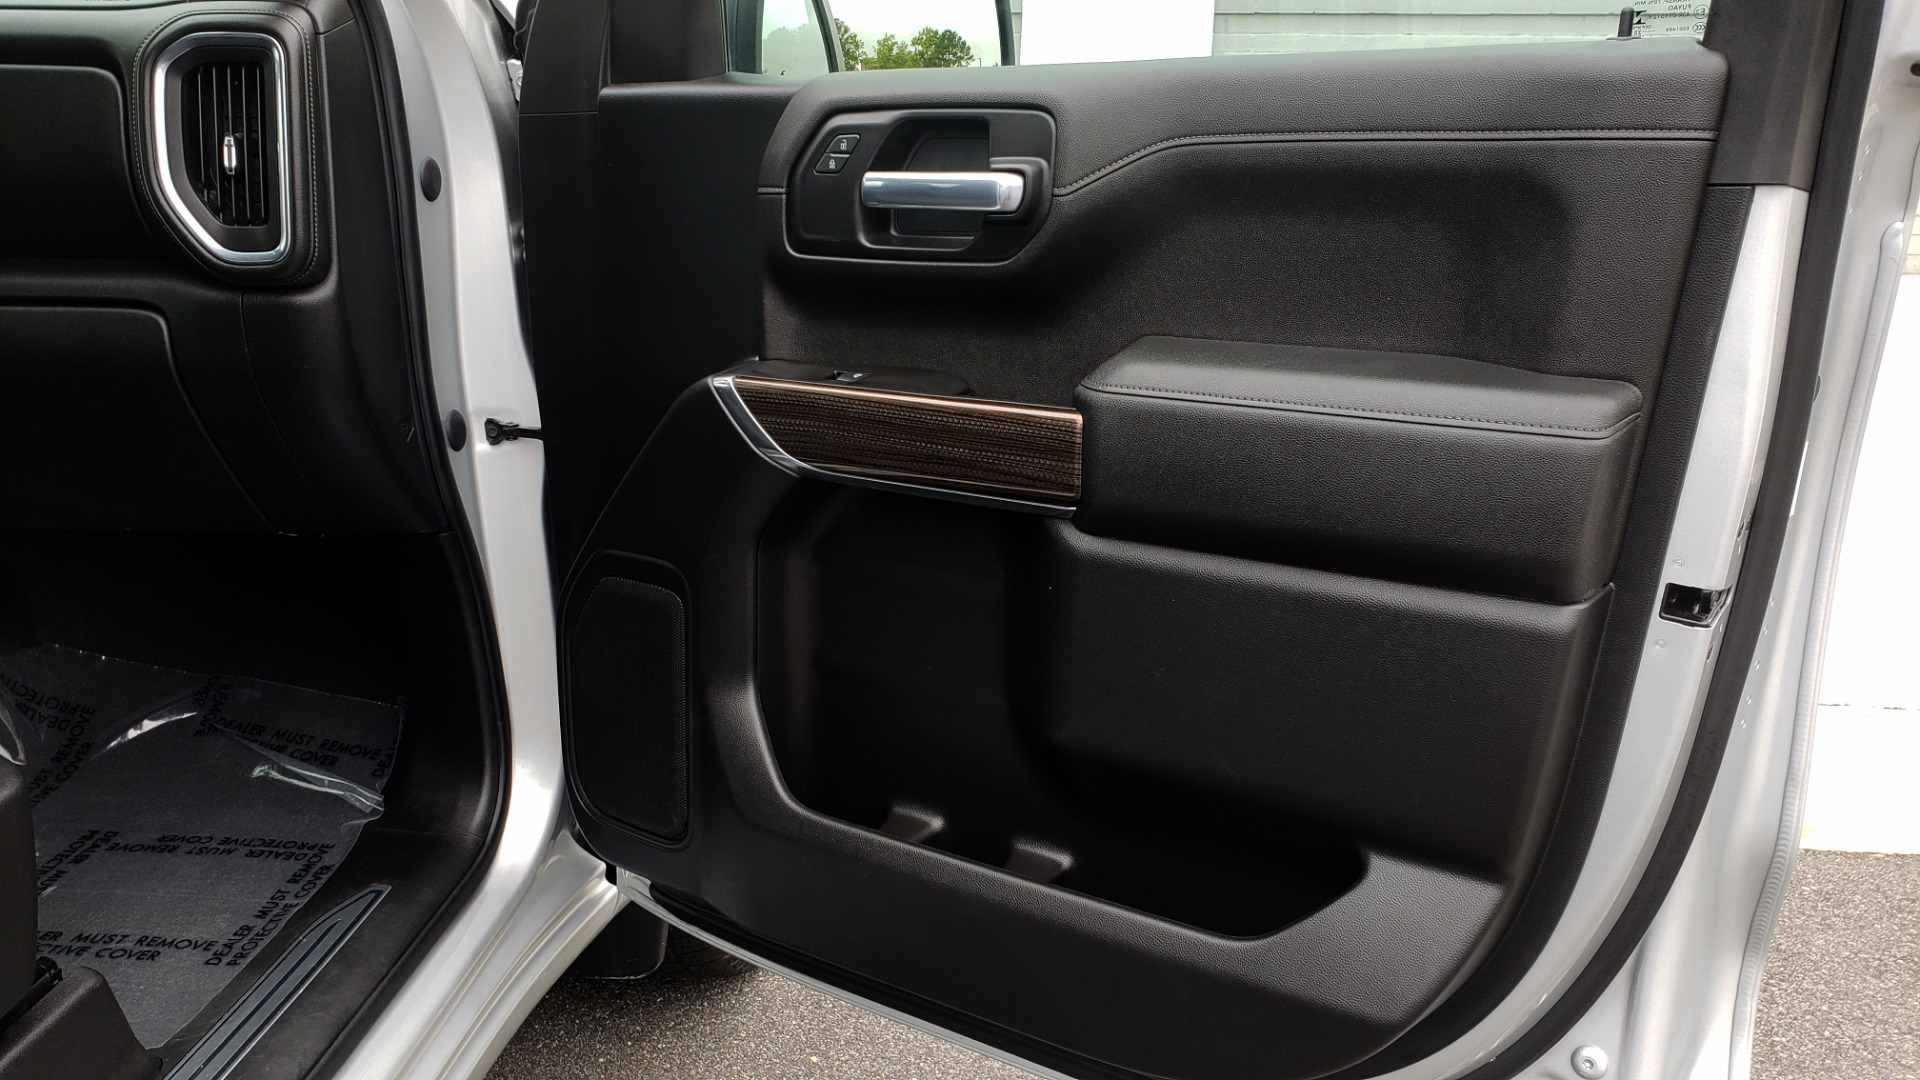 Used 2020 Chevrolet SILVERADO 1500 LT 4WD DOUBLECAB 147 WB / 5.3L V8 / BEDLINER / REARVIEW for sale $41,995 at Formula Imports in Charlotte NC 28227 57